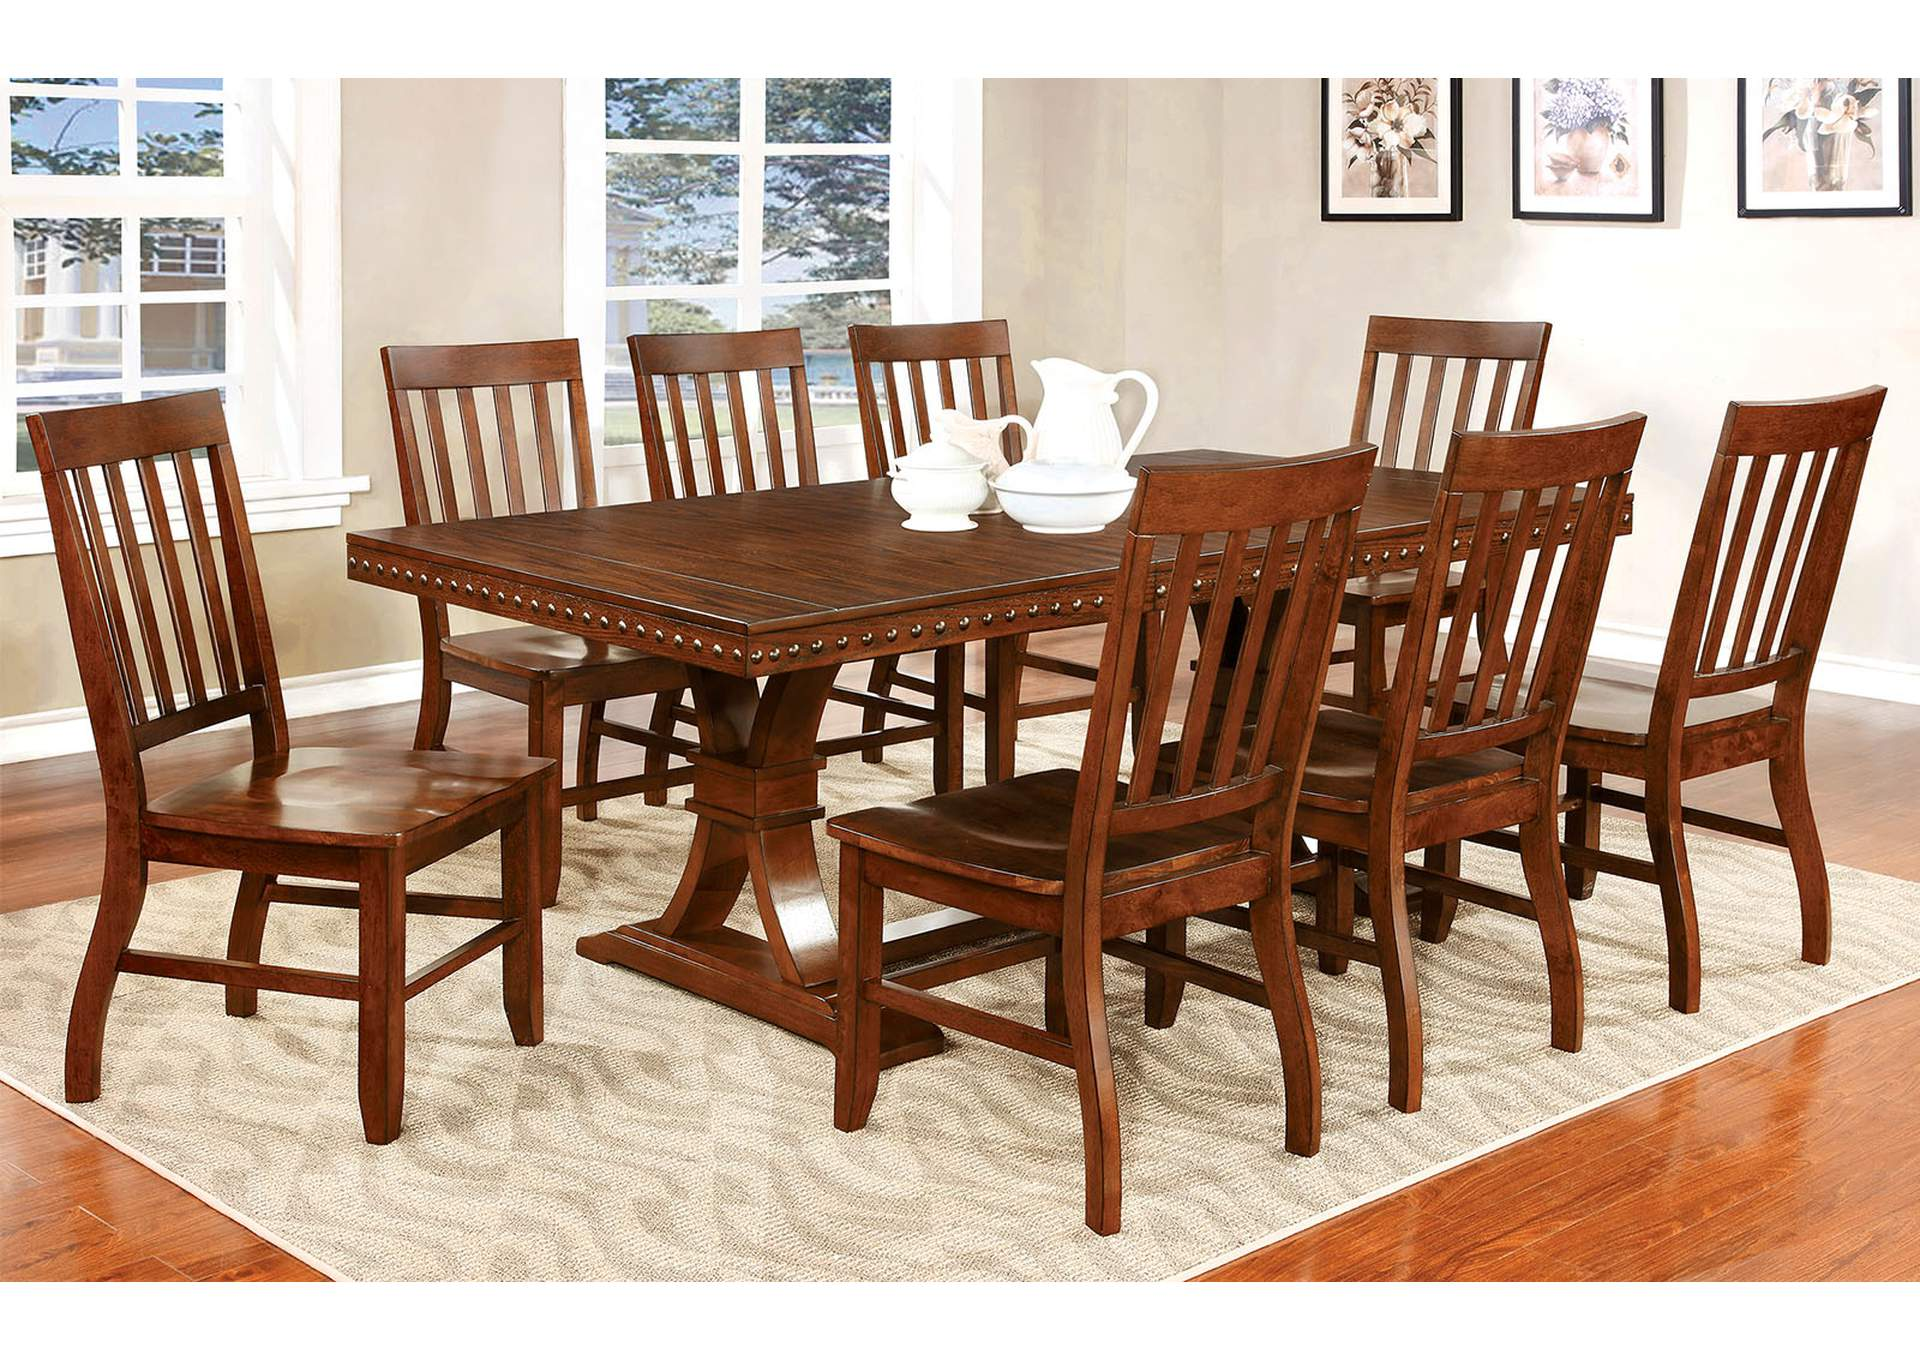 Foster I Dark Oak Extension Dining Table w/8 Side Chair,Furniture of America